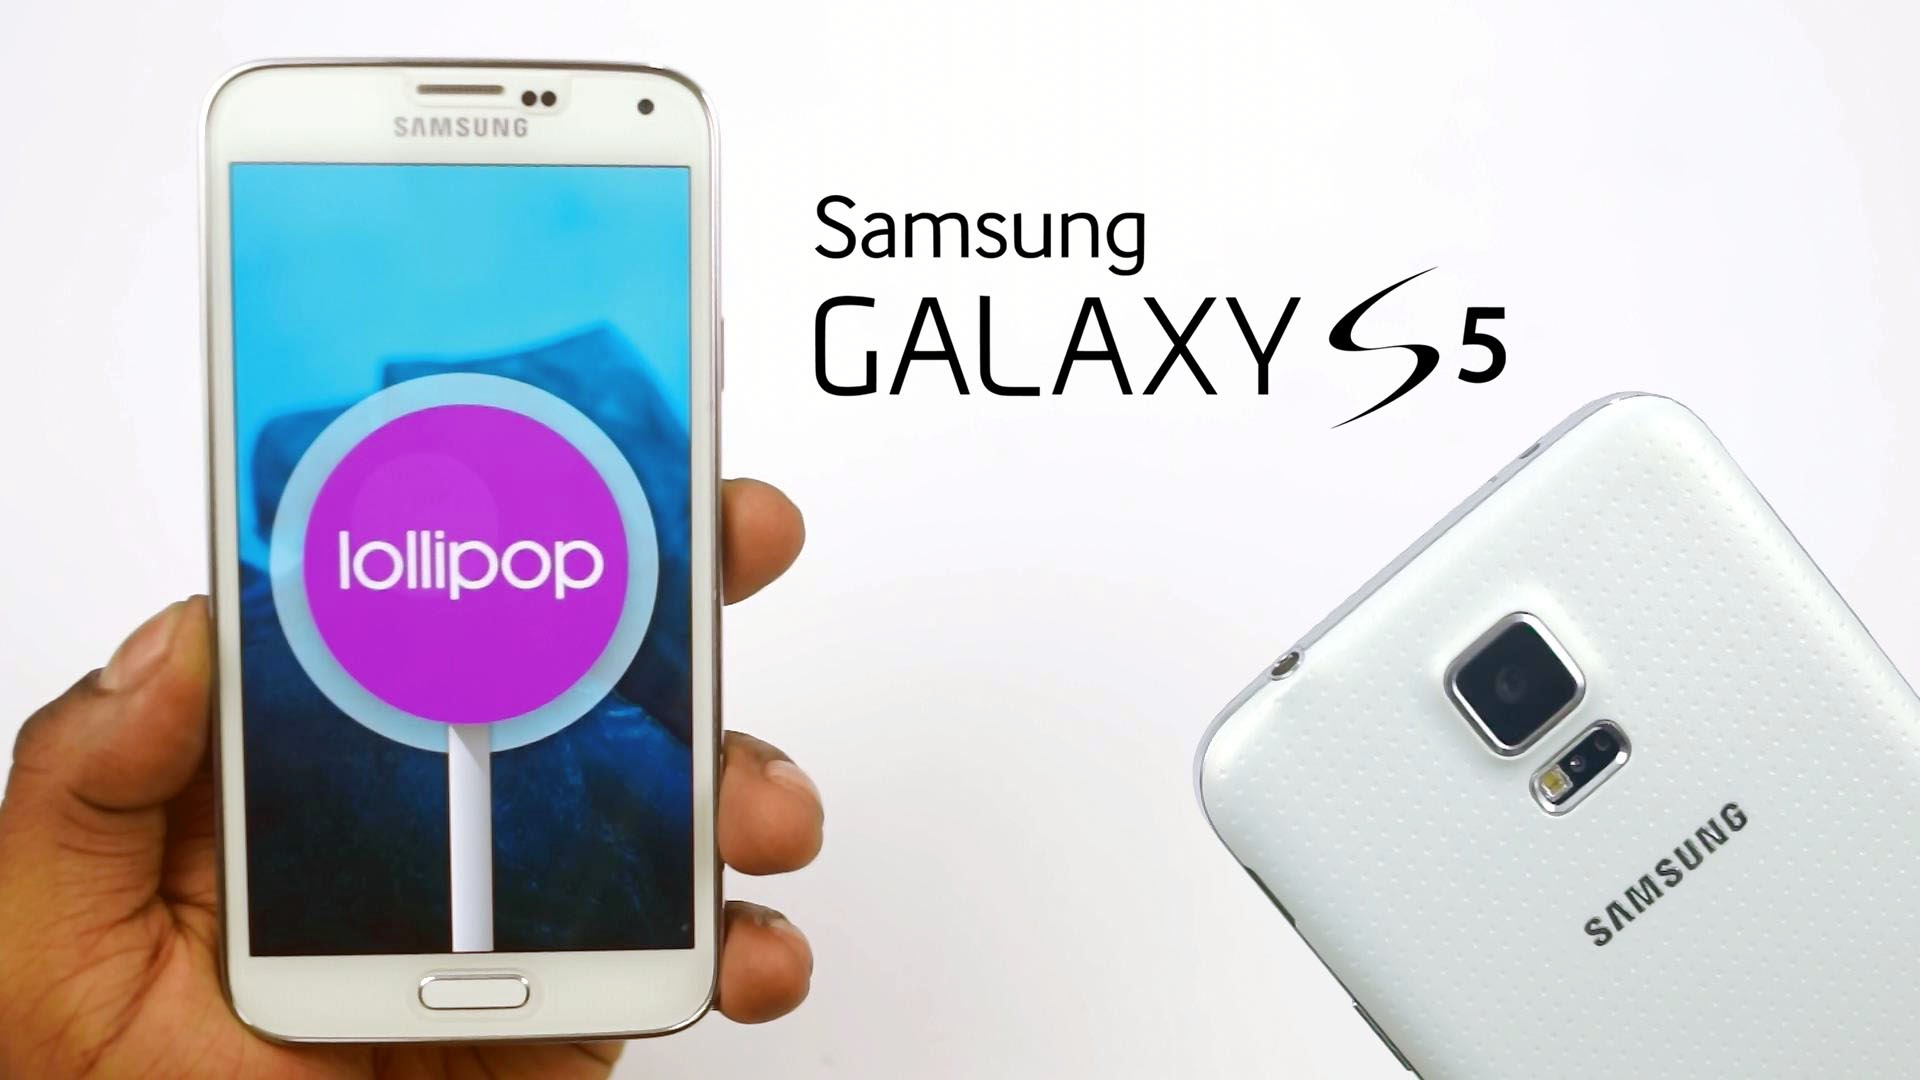 Get moar Lollipop on the Galaxy S5 if you're tired of